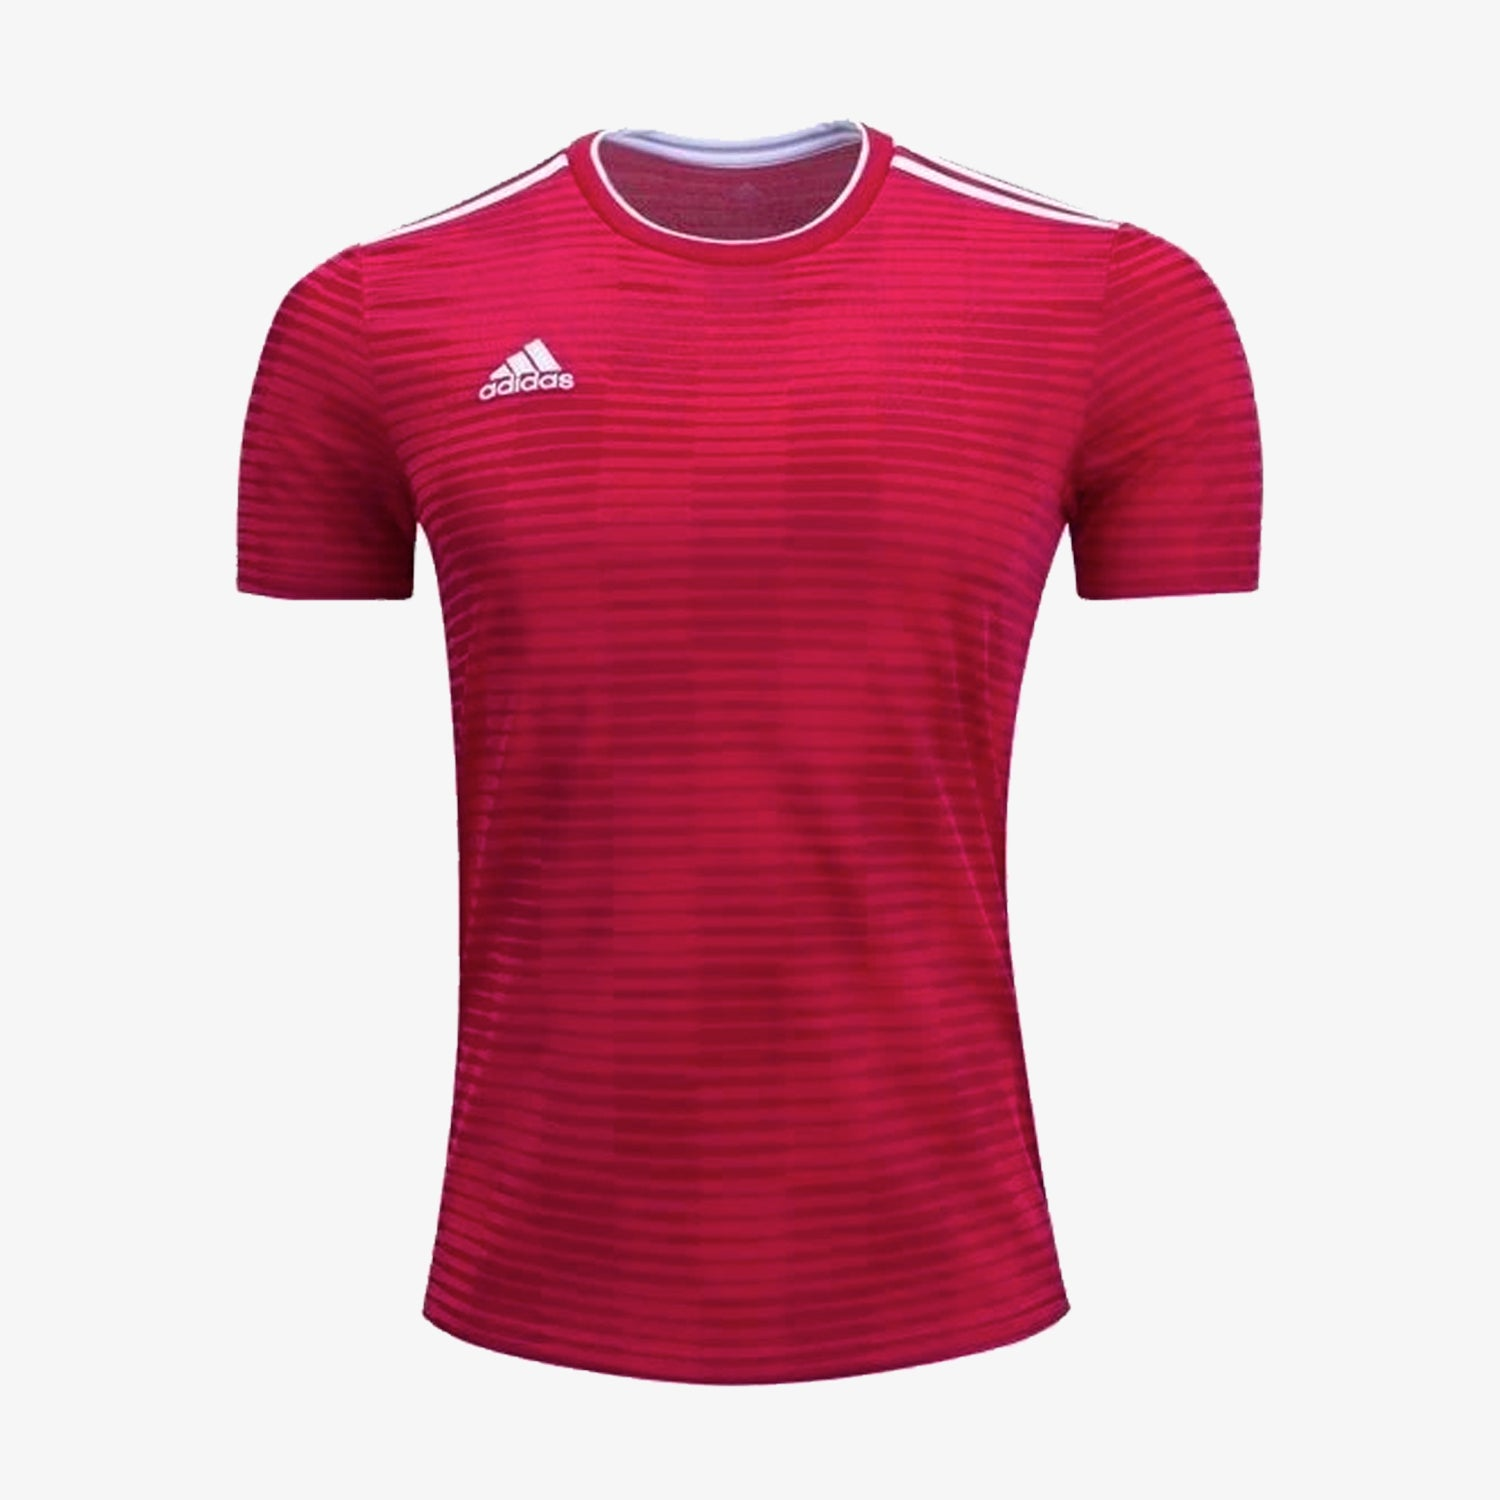 Youth Condivo 18 Soccer Jersey - Red - Niky's Sports